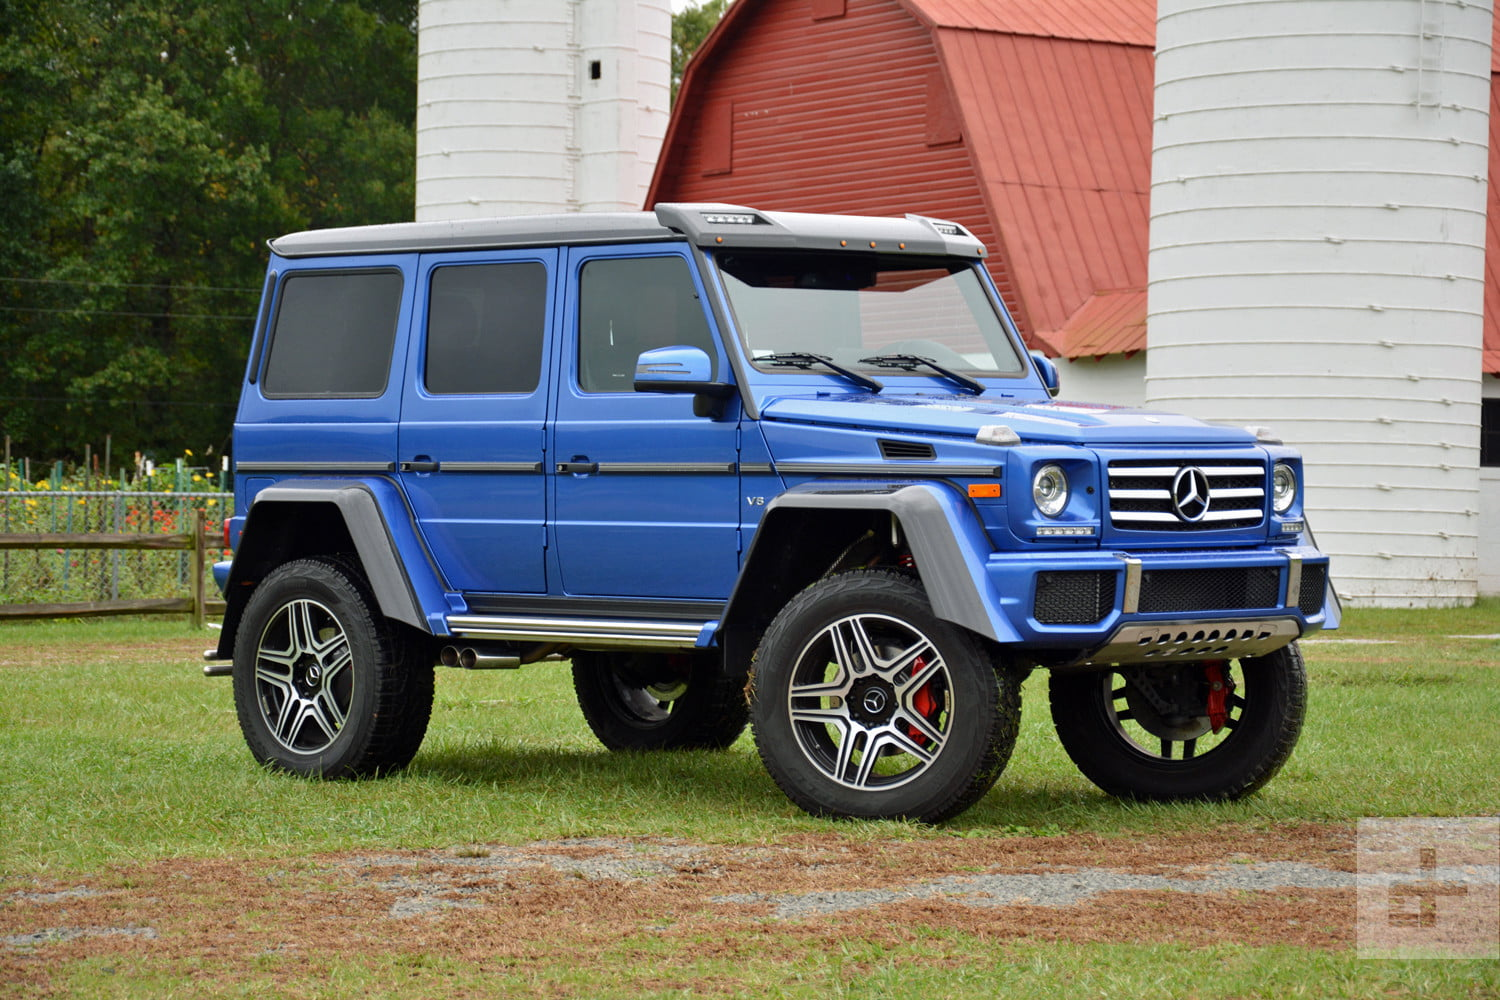 mercedes benz g550 4x4 review pics performance specs digital trends. Black Bedroom Furniture Sets. Home Design Ideas